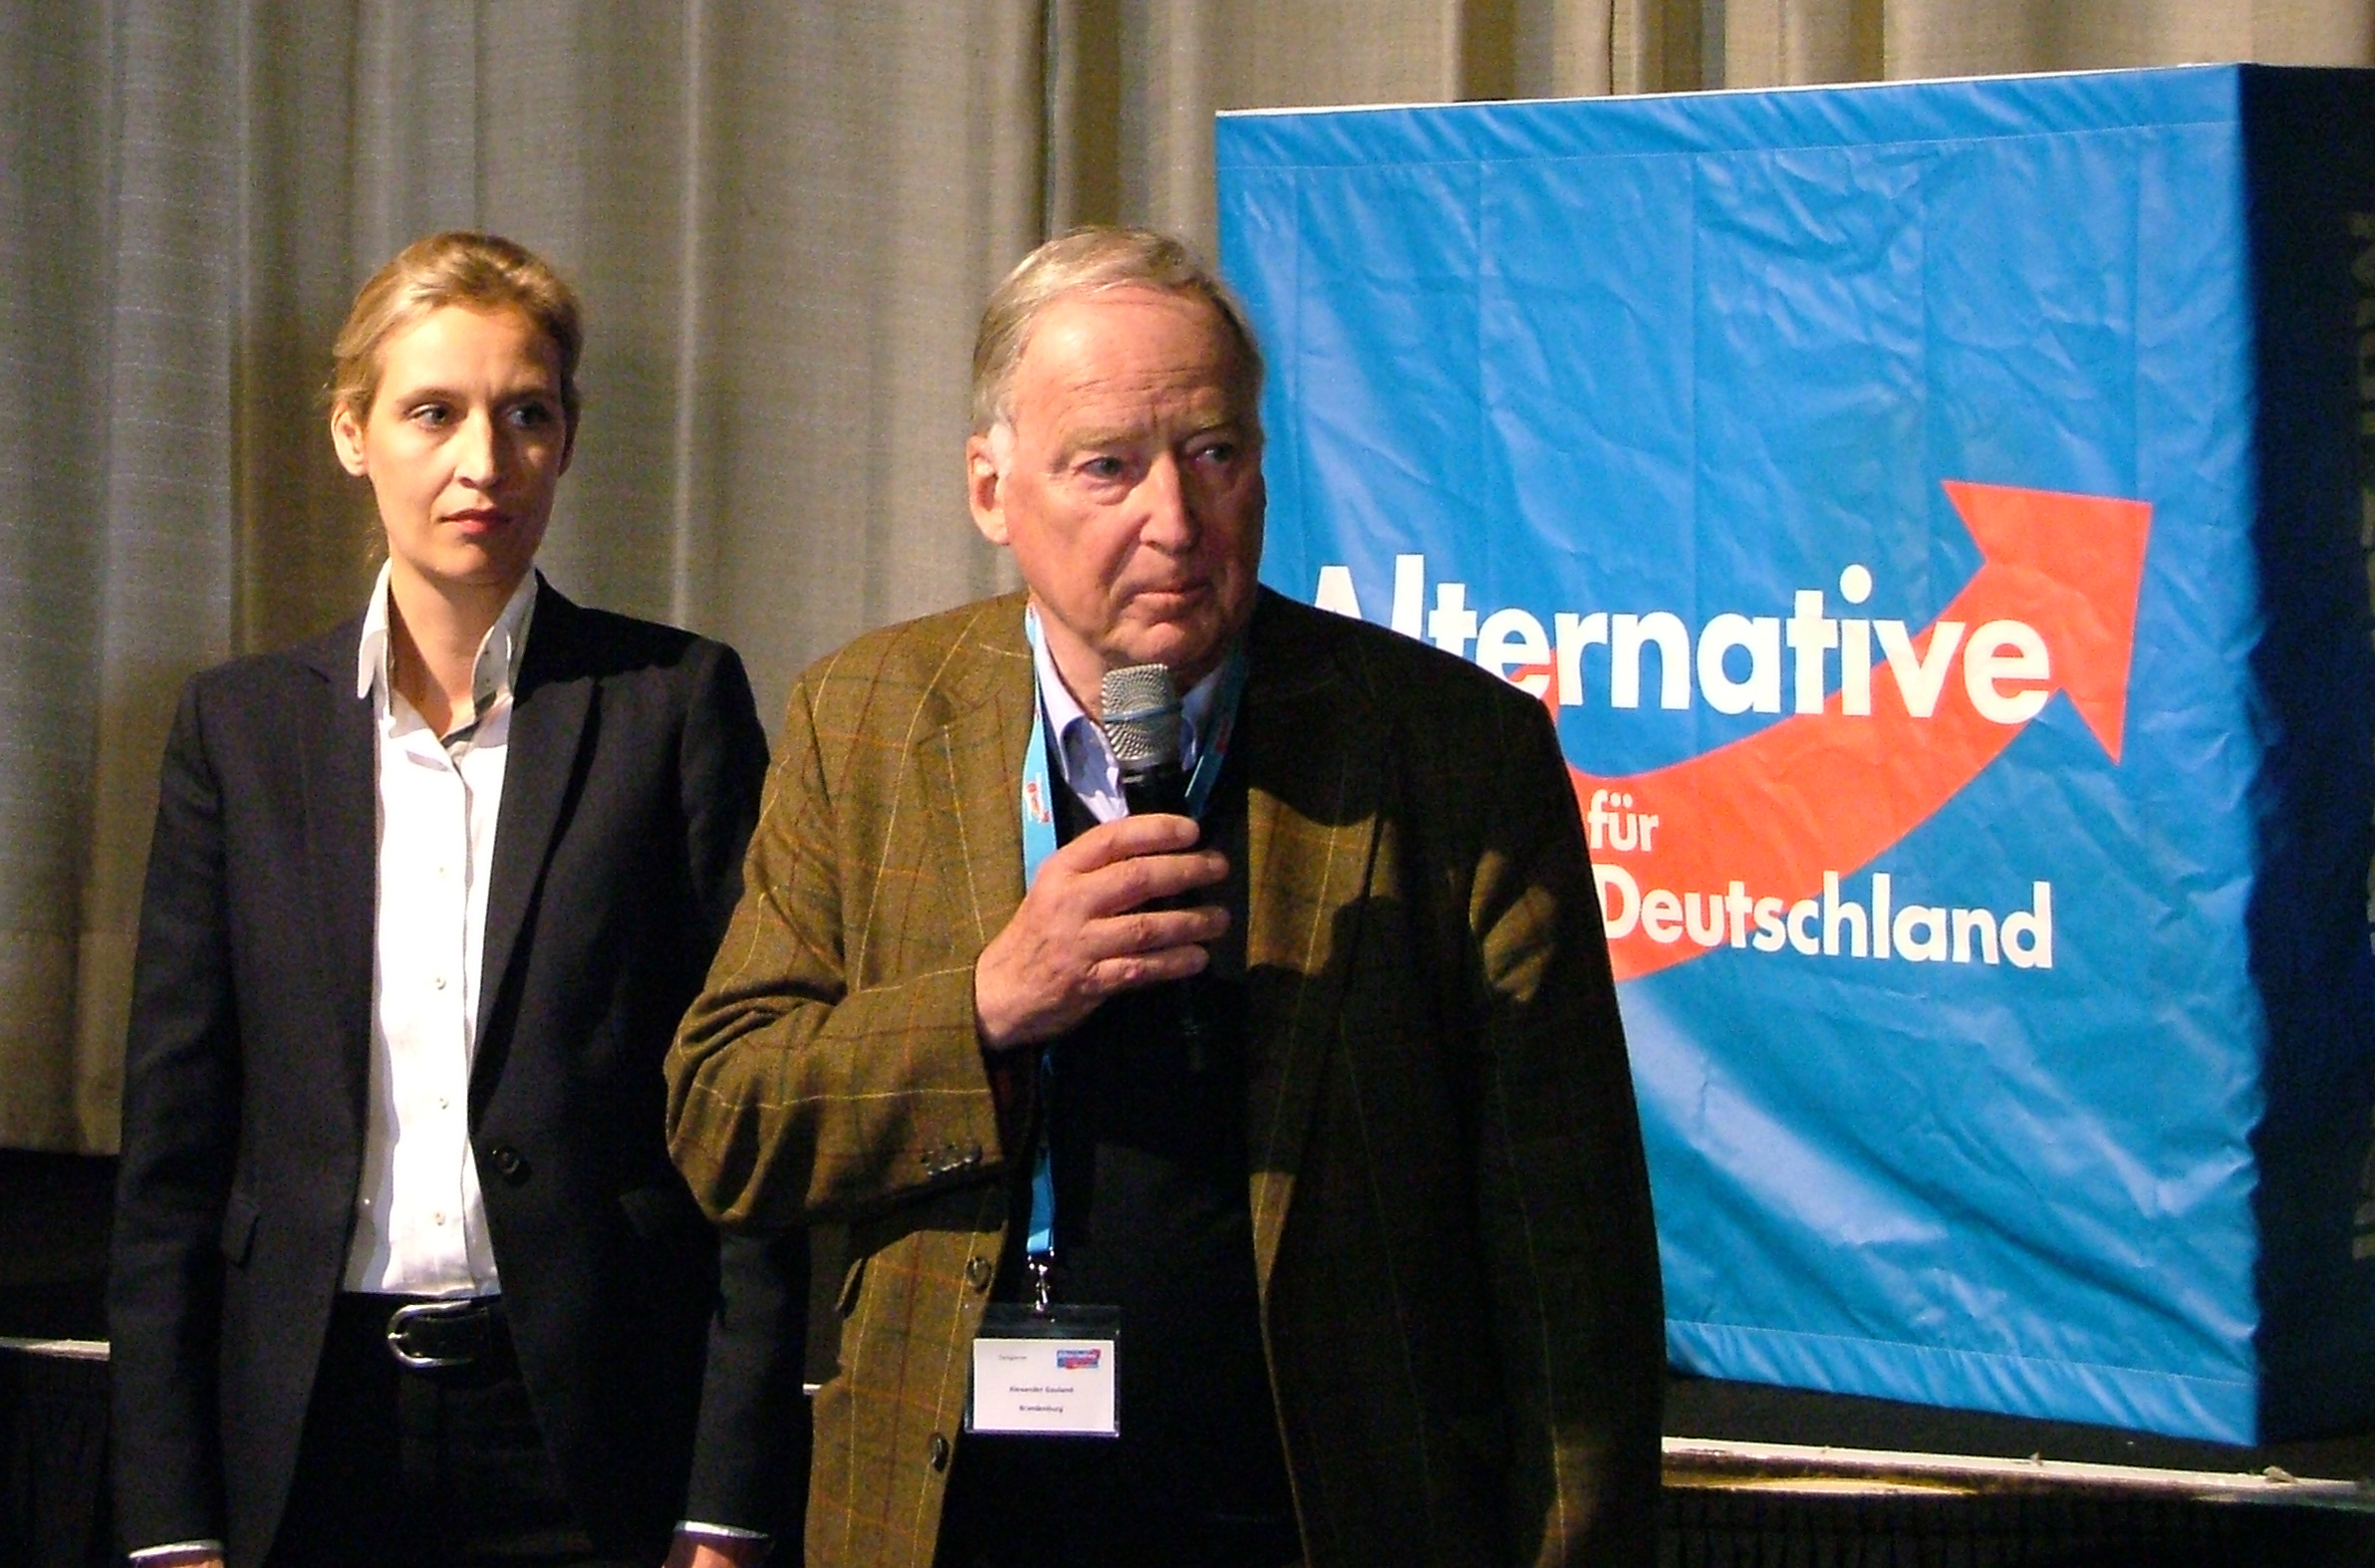 https://upload.wikimedia.org/wikipedia/commons/e/ee/2017-04-23_AfD_Bundesparteitag_in_K%C3%B6ln_-68.jpg